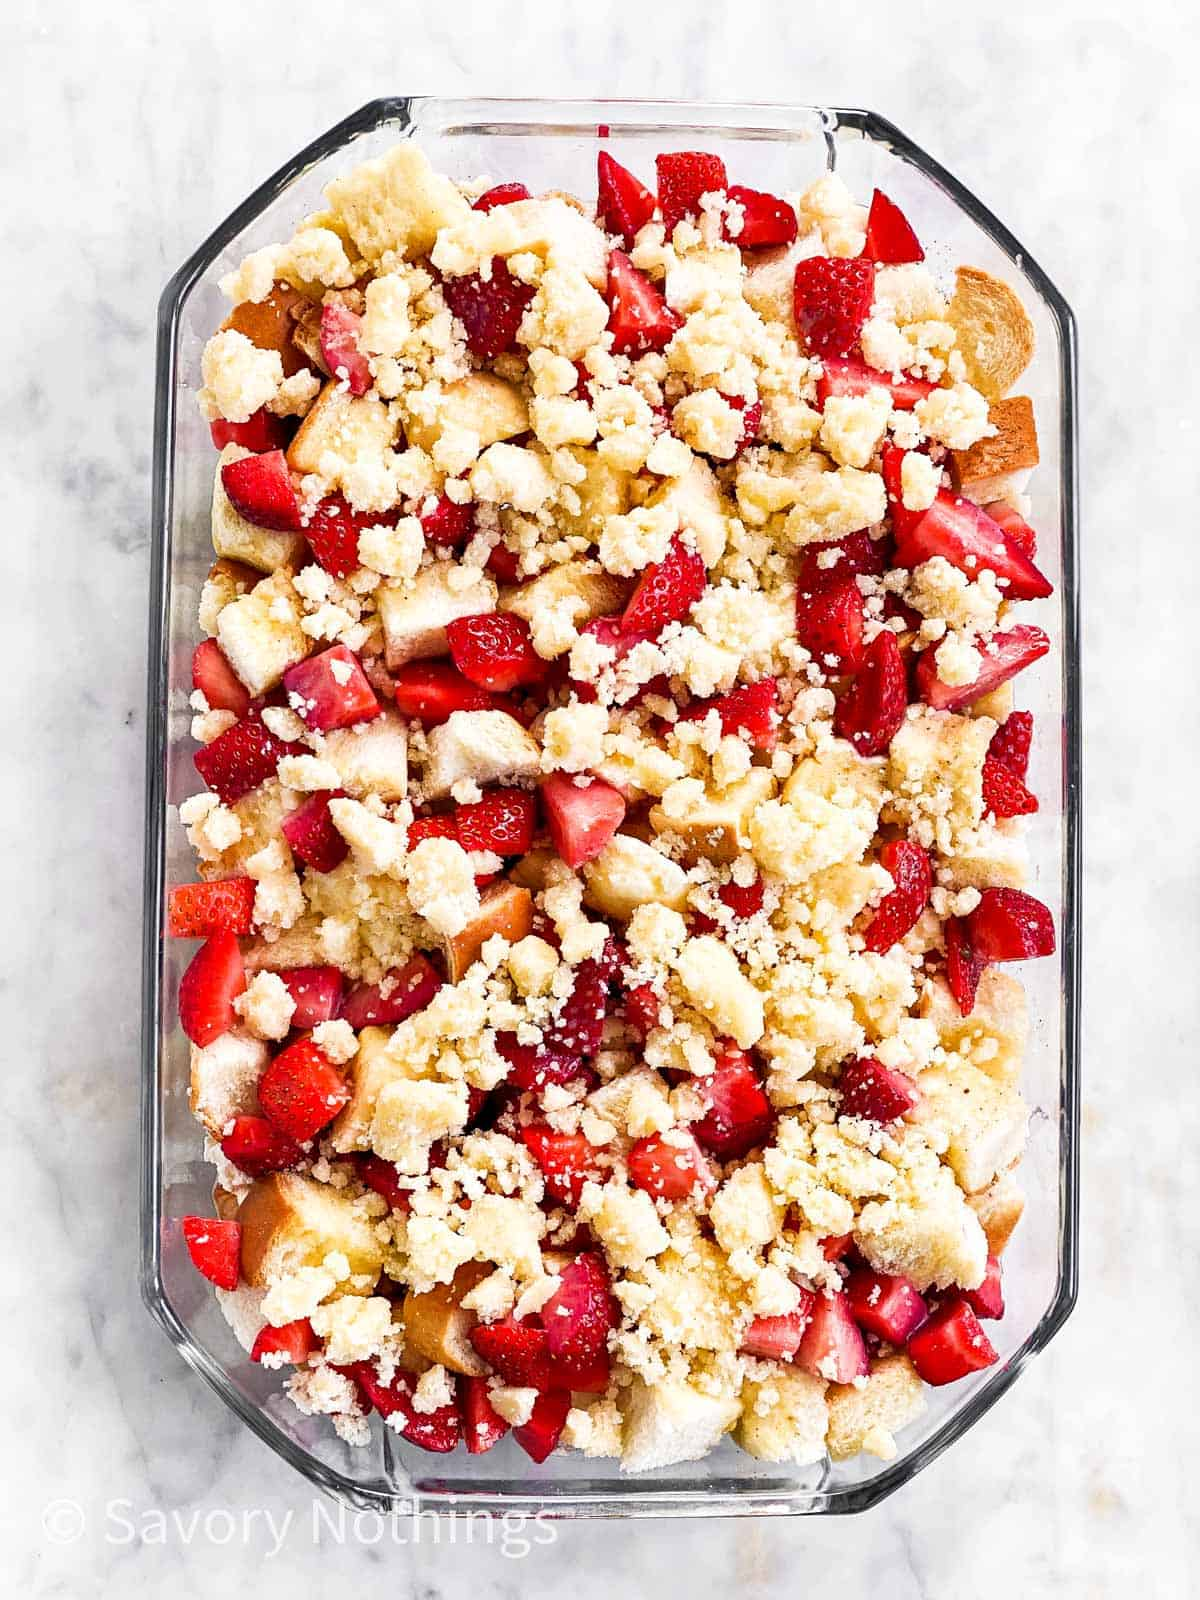 unbaked strawberry French toast casserole in glass dish sitting on marble surface, topped with streusel